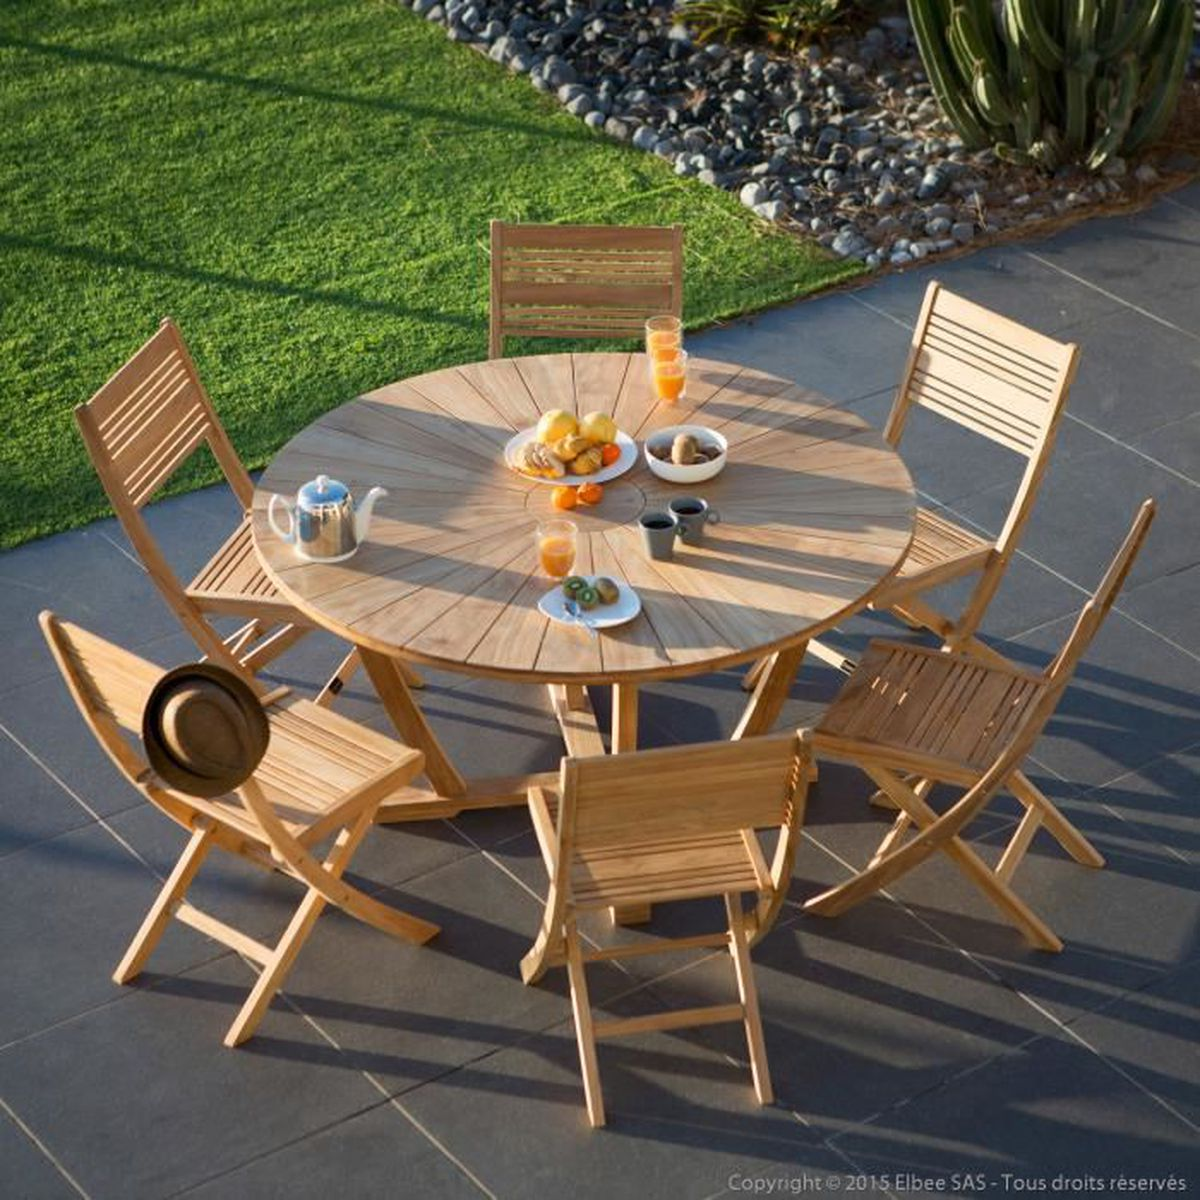 Salon de jardin 6 places en teck brut : table ronde 140cm + 6 ...